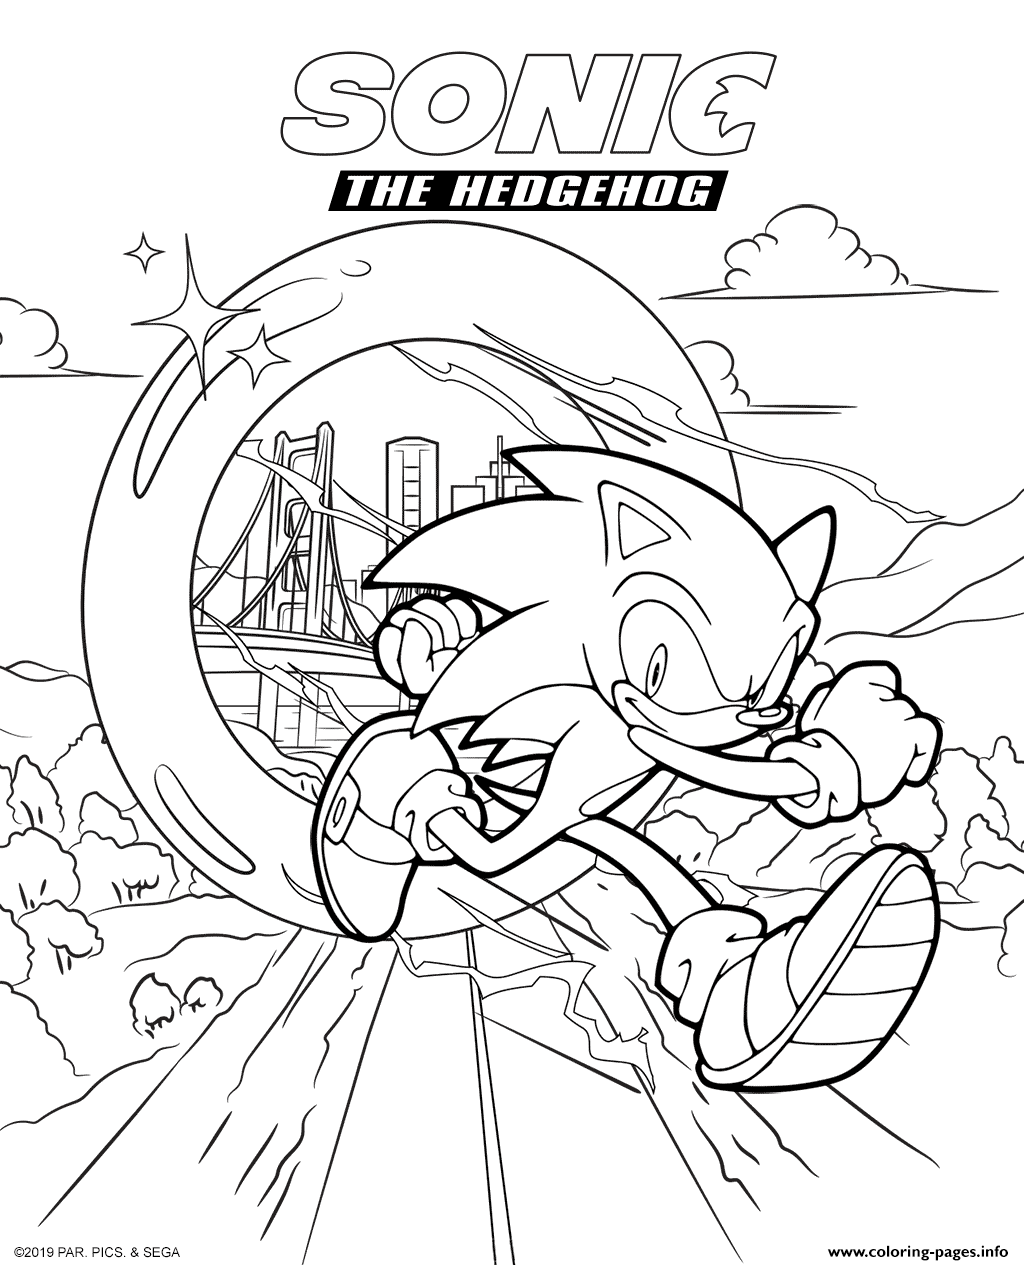 Sonic The Hedgehog Movie 2020 Coloring Pages Printable